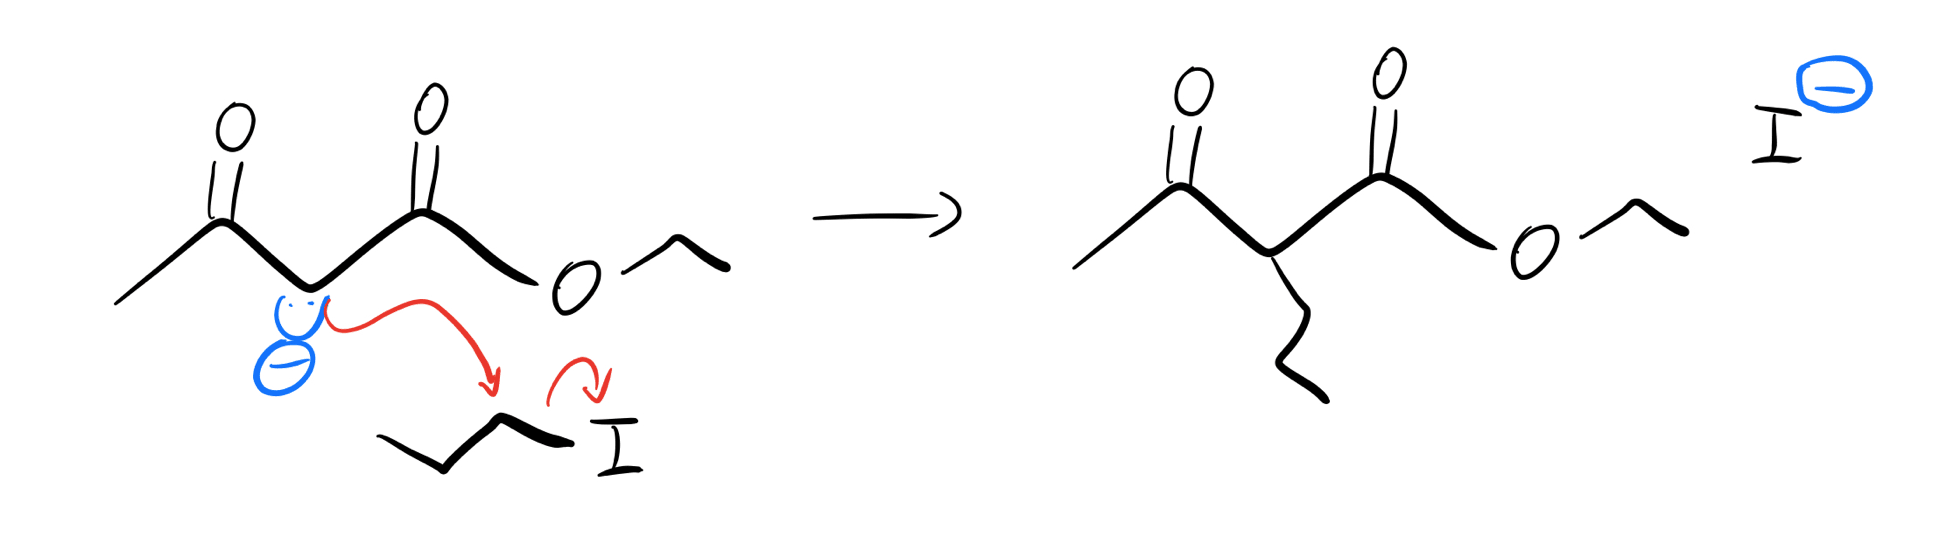 Enolate-alkylation